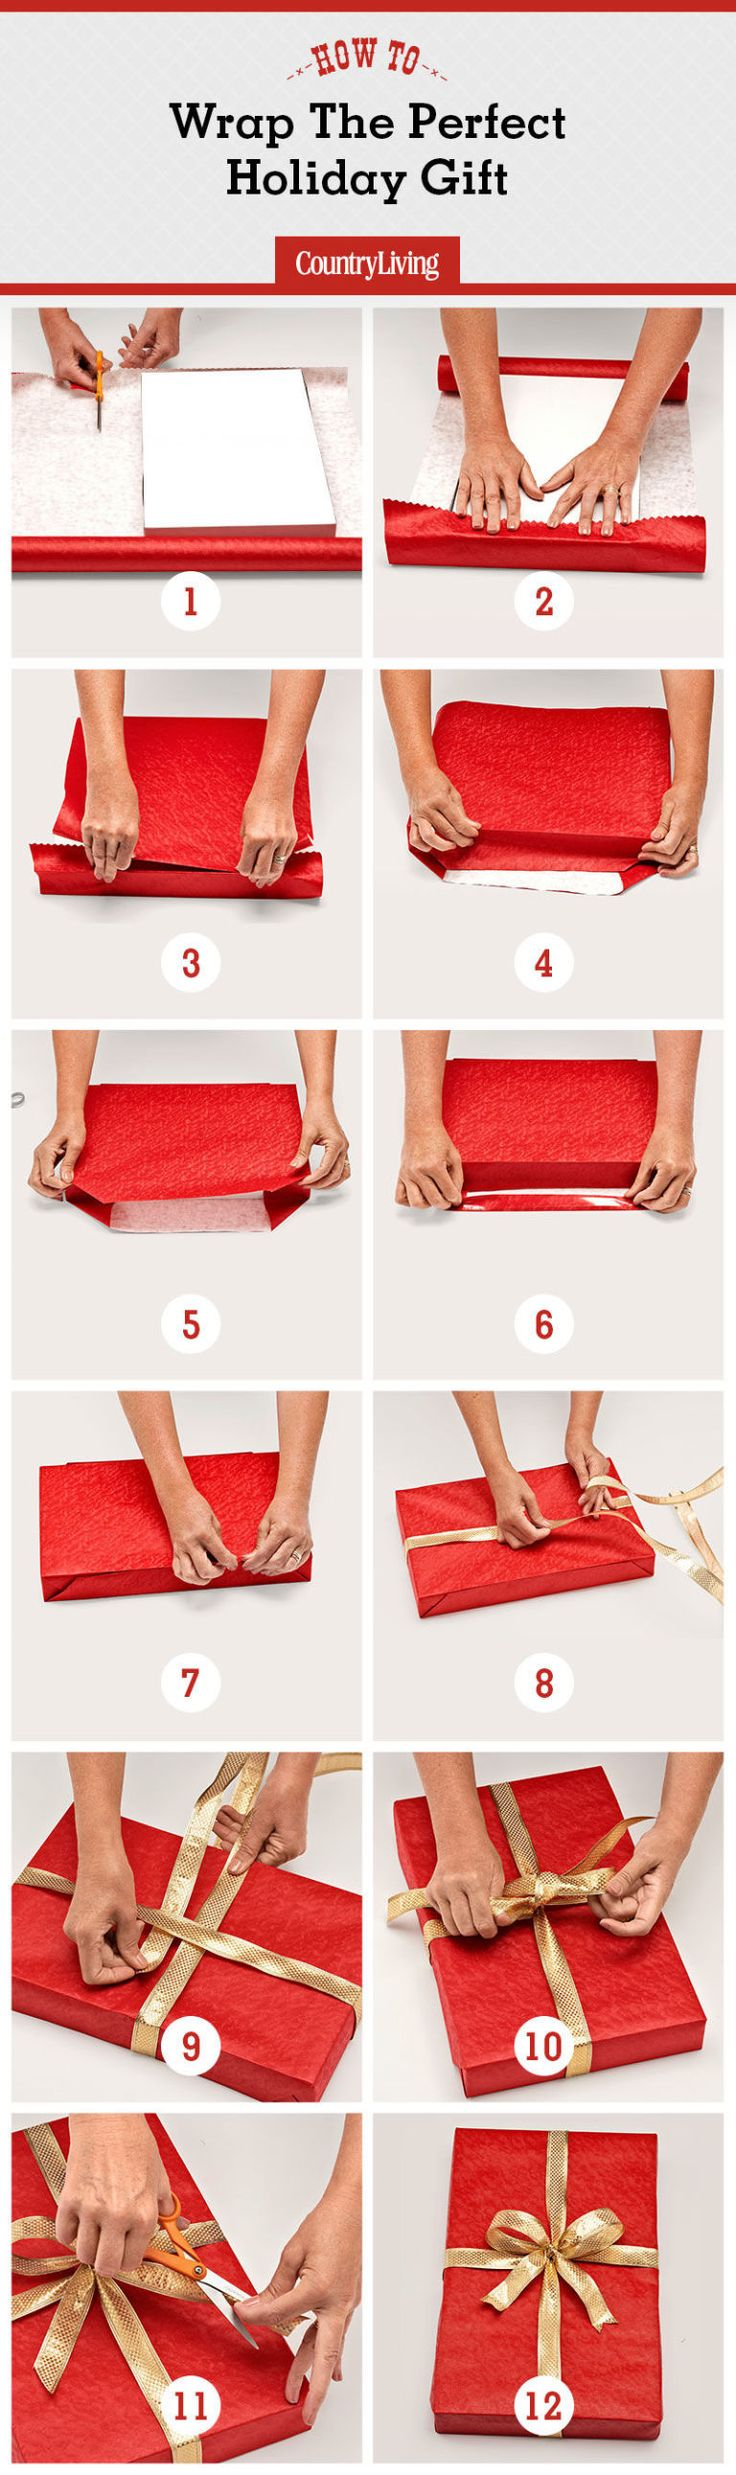 Wondering how to wrap a gift? Macy's gift-wrapping expert demonstrates the perfect way to wrap a present.